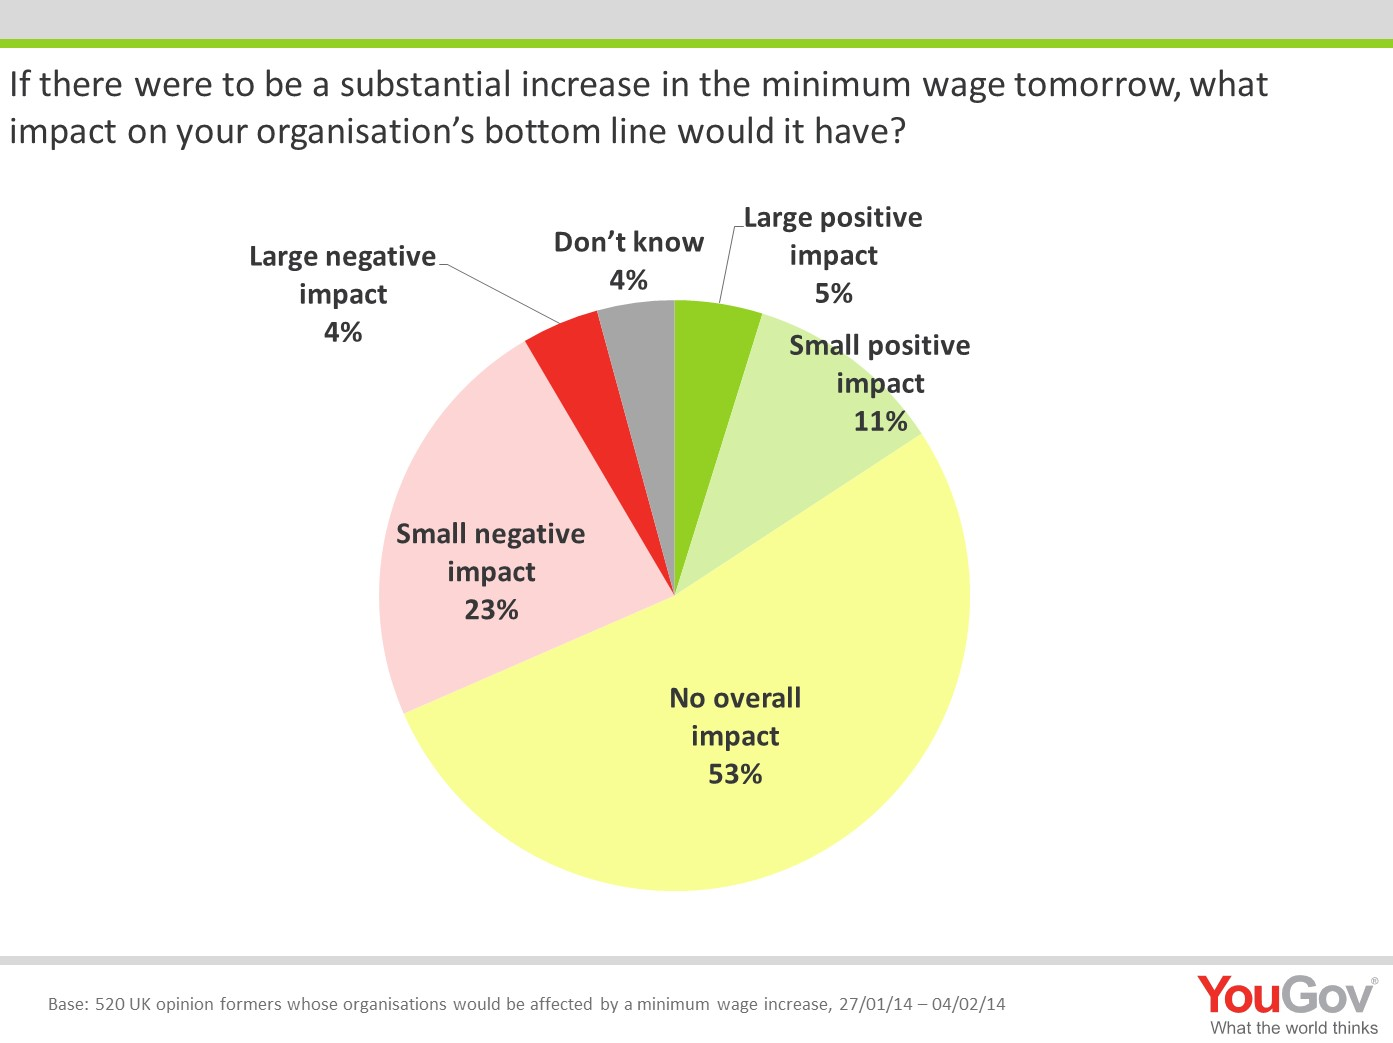 the negative impact of raising the minimum wage